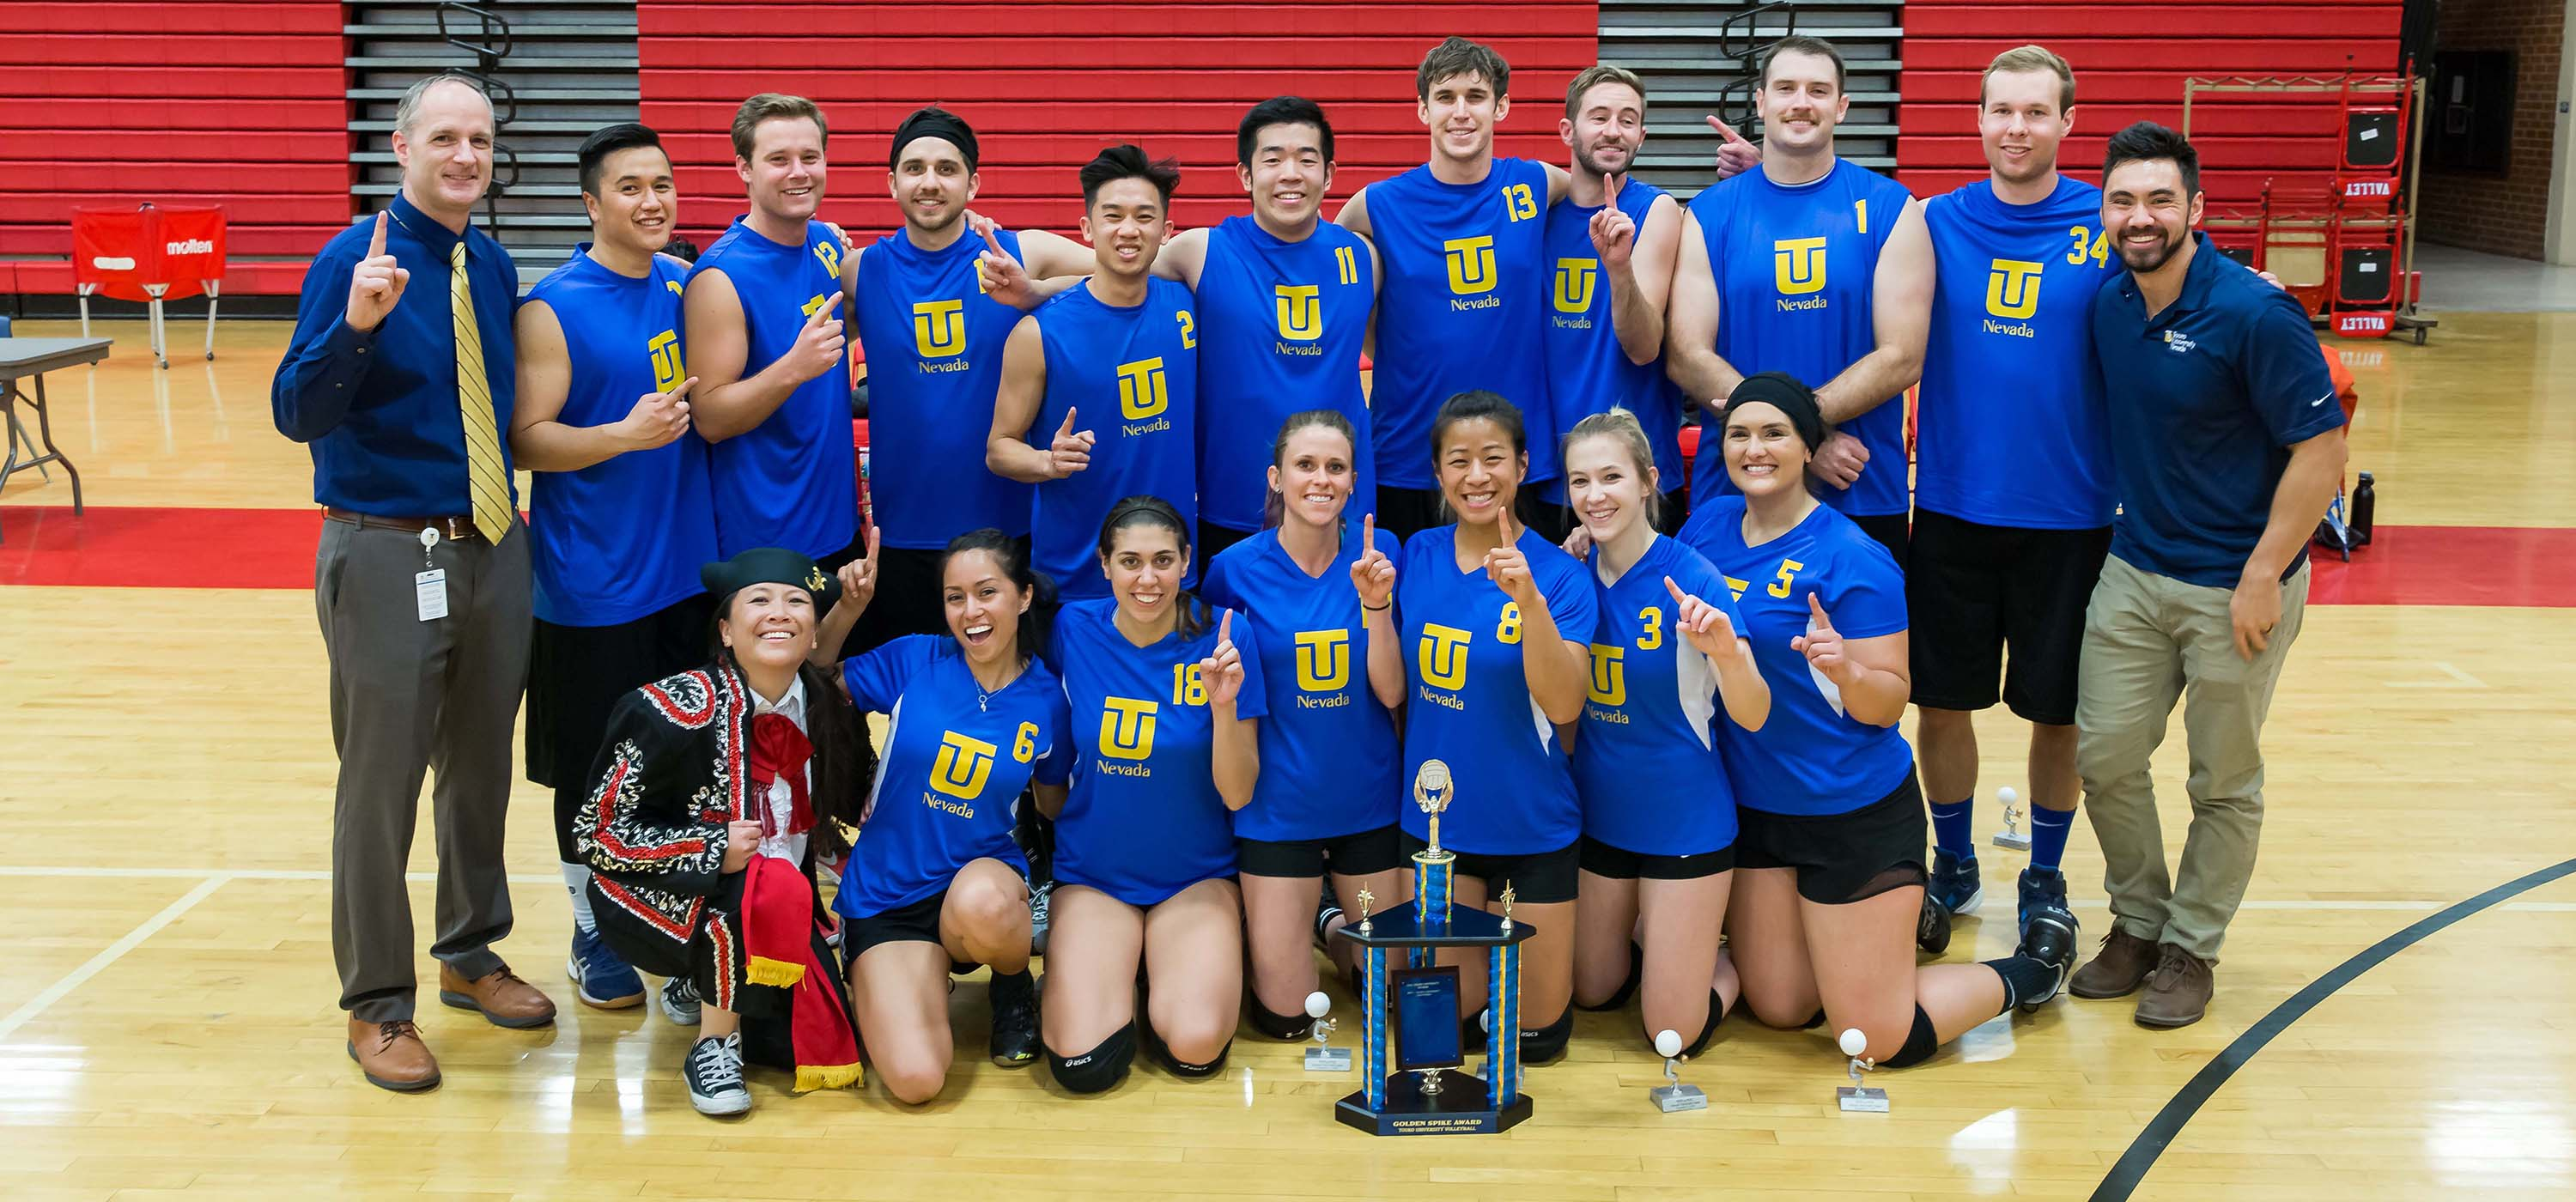 The Touro Nevada Matadors after winning the Golden Spike.